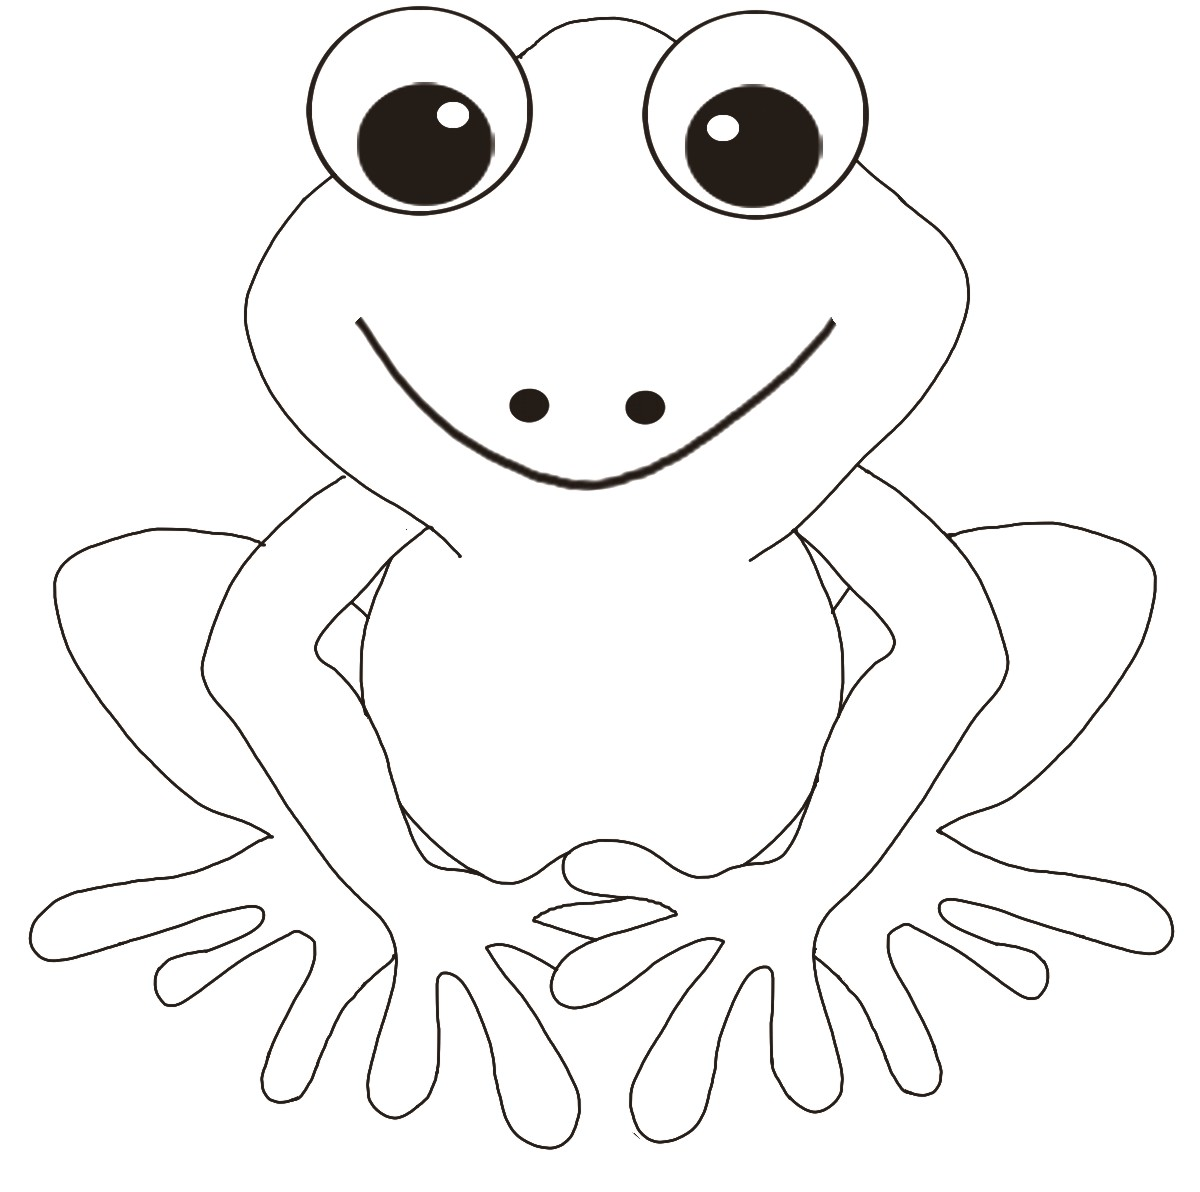 frog color pages - Frog Coloring Sheets